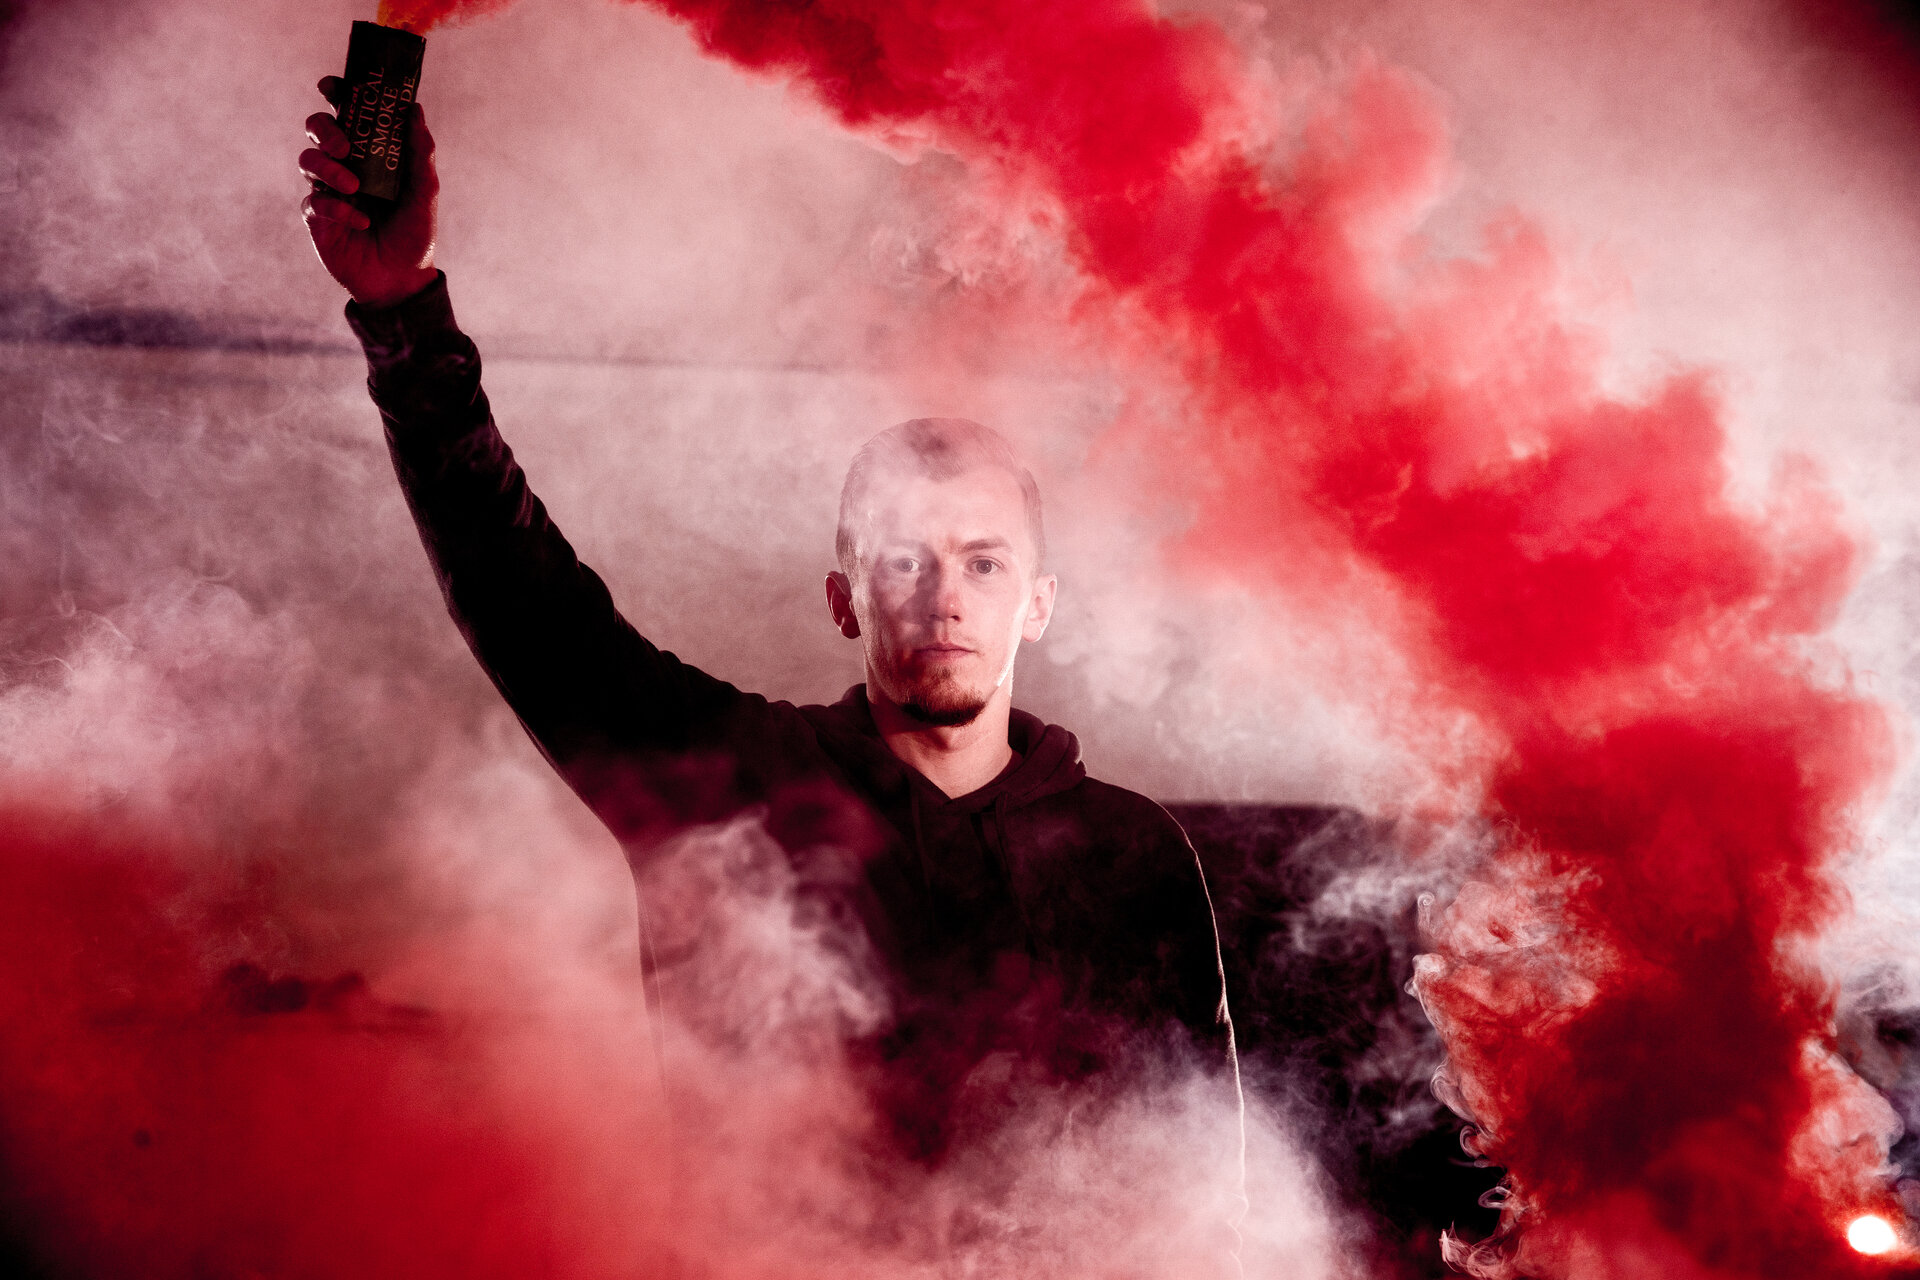 SOUTHAMPTON, ENGLAND - FEBRUARY 06: Southampton FC's James Ward-Prowse pictured for the Club's matchday programme at St Mary's stadium on February 6, 2019 in Southampton, England. (Photo by Matt Watson/Southampton FC via Getty Images)